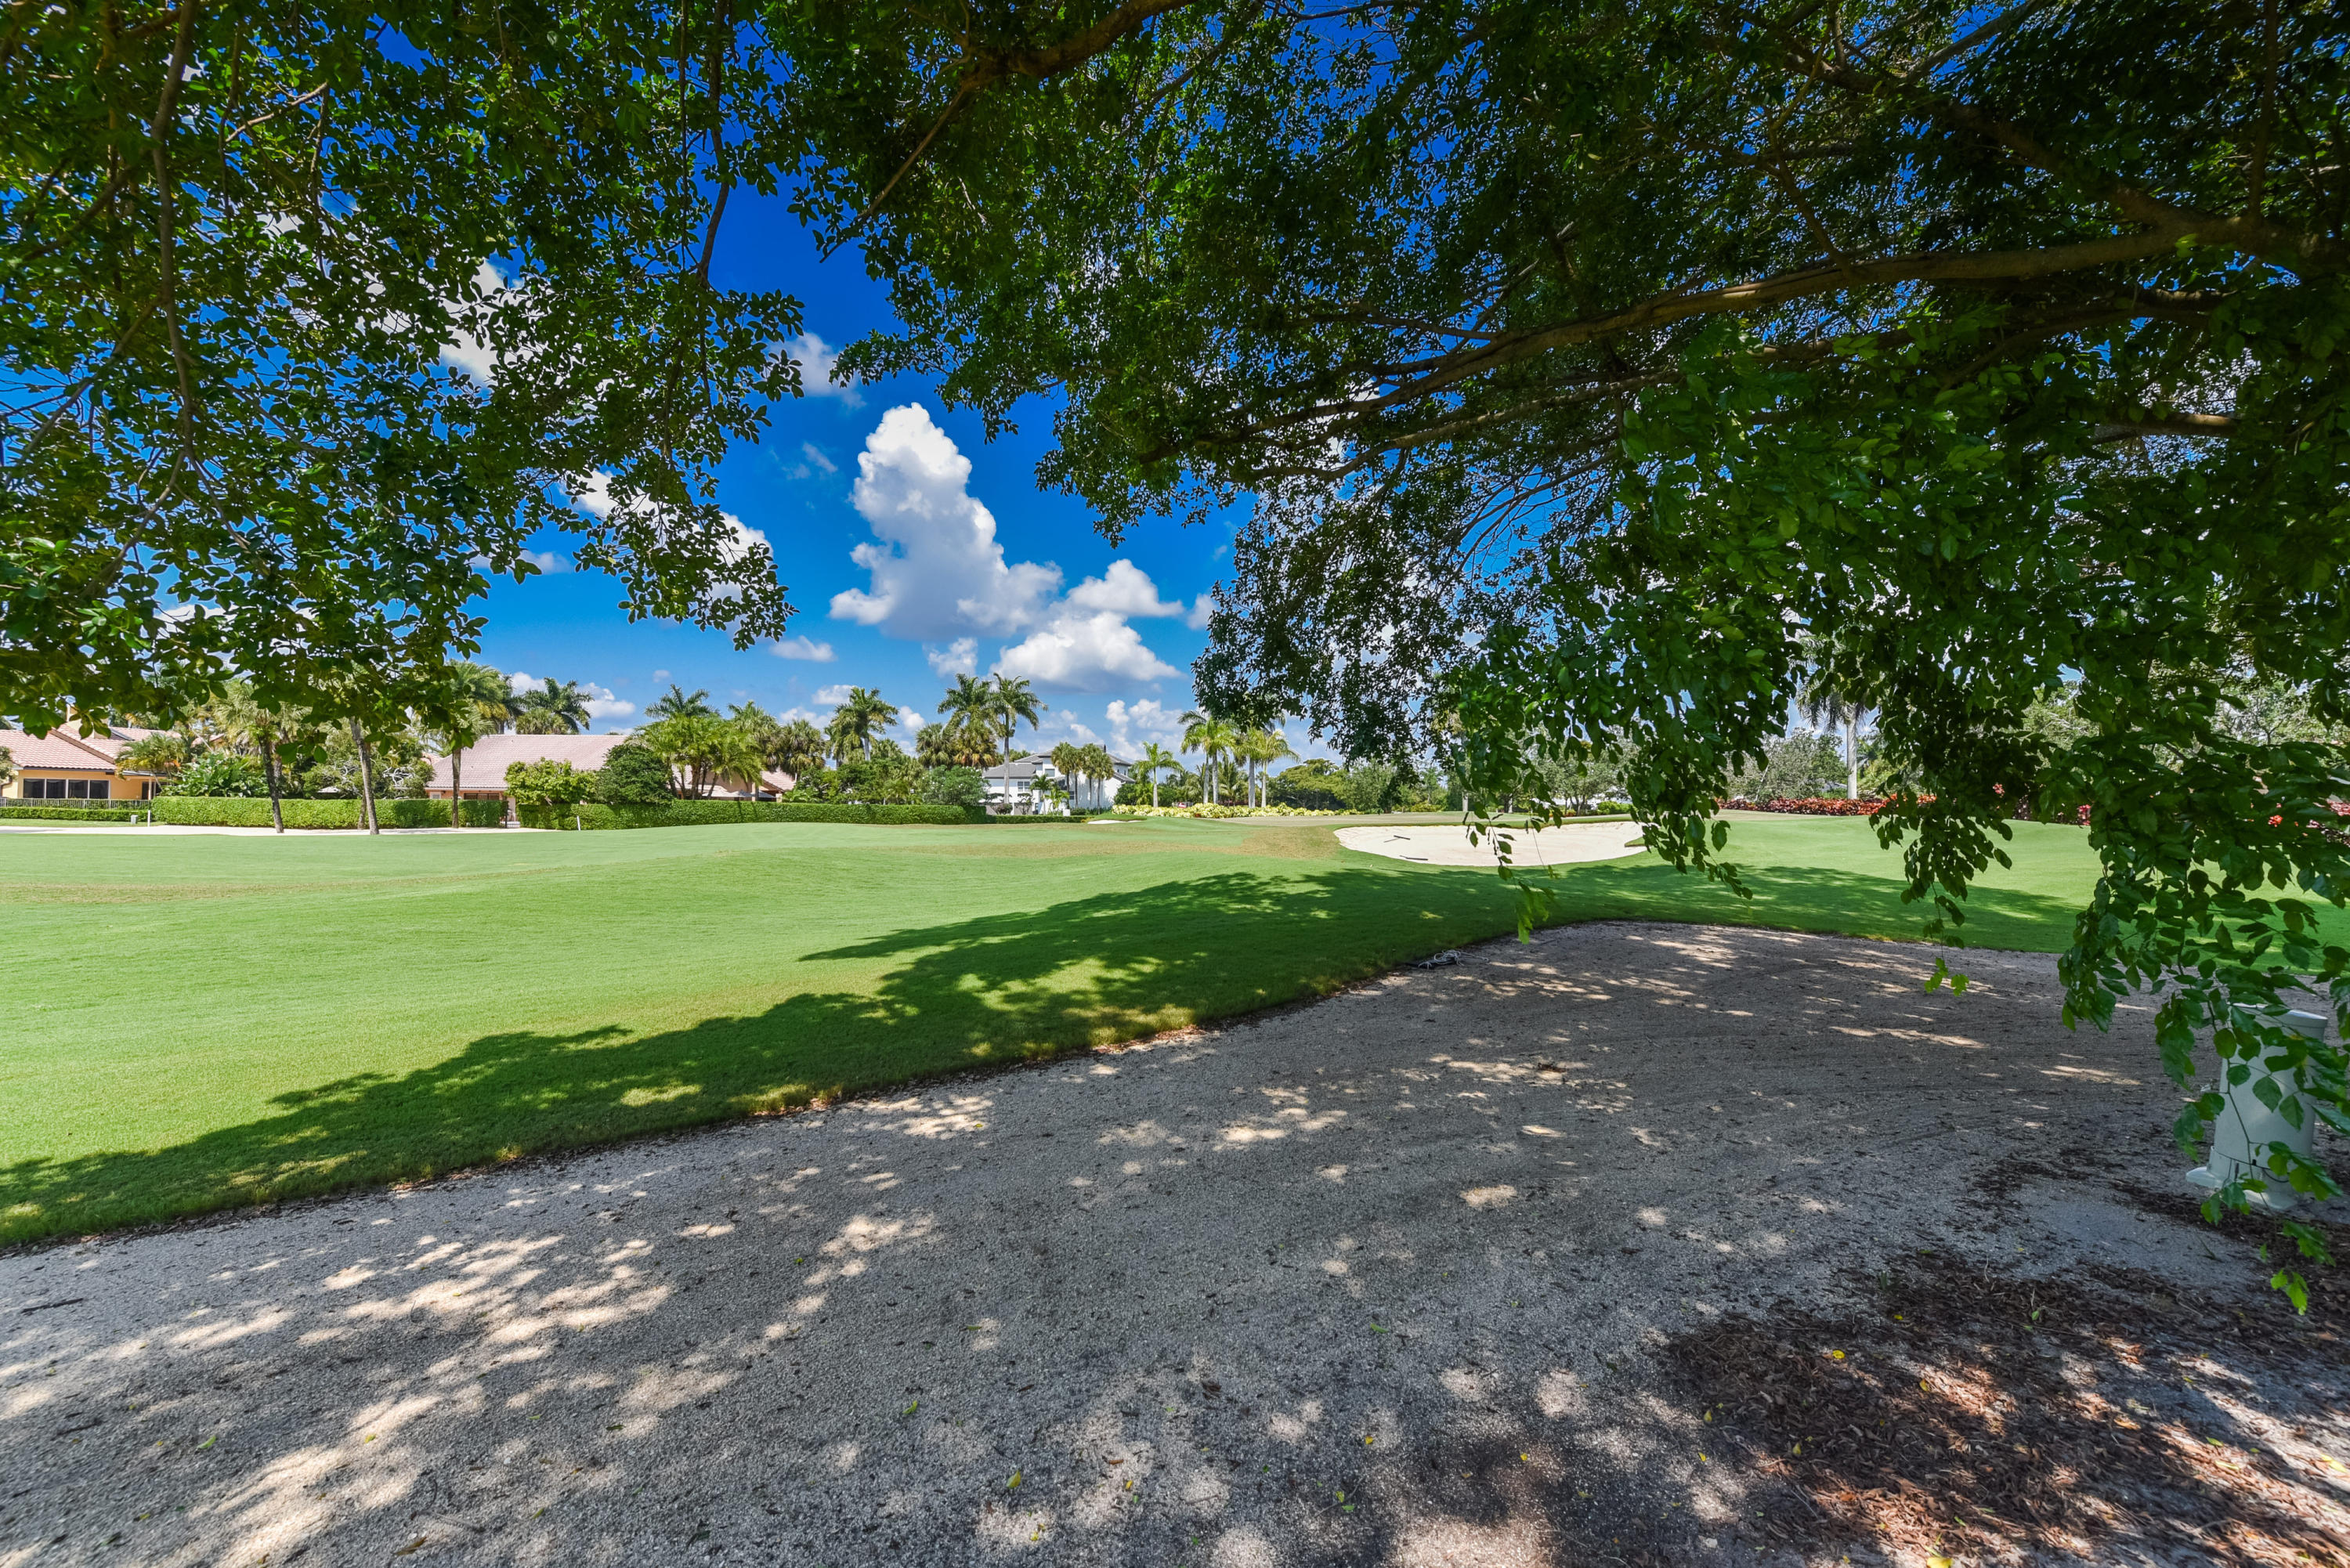 17689 Scarsdale Way, Boca Raton, Florida 33496, 4 Bedrooms Bedrooms, ,6.2 BathroomsBathrooms,Single Family,For Sale,Scarsdale,RX-10480691